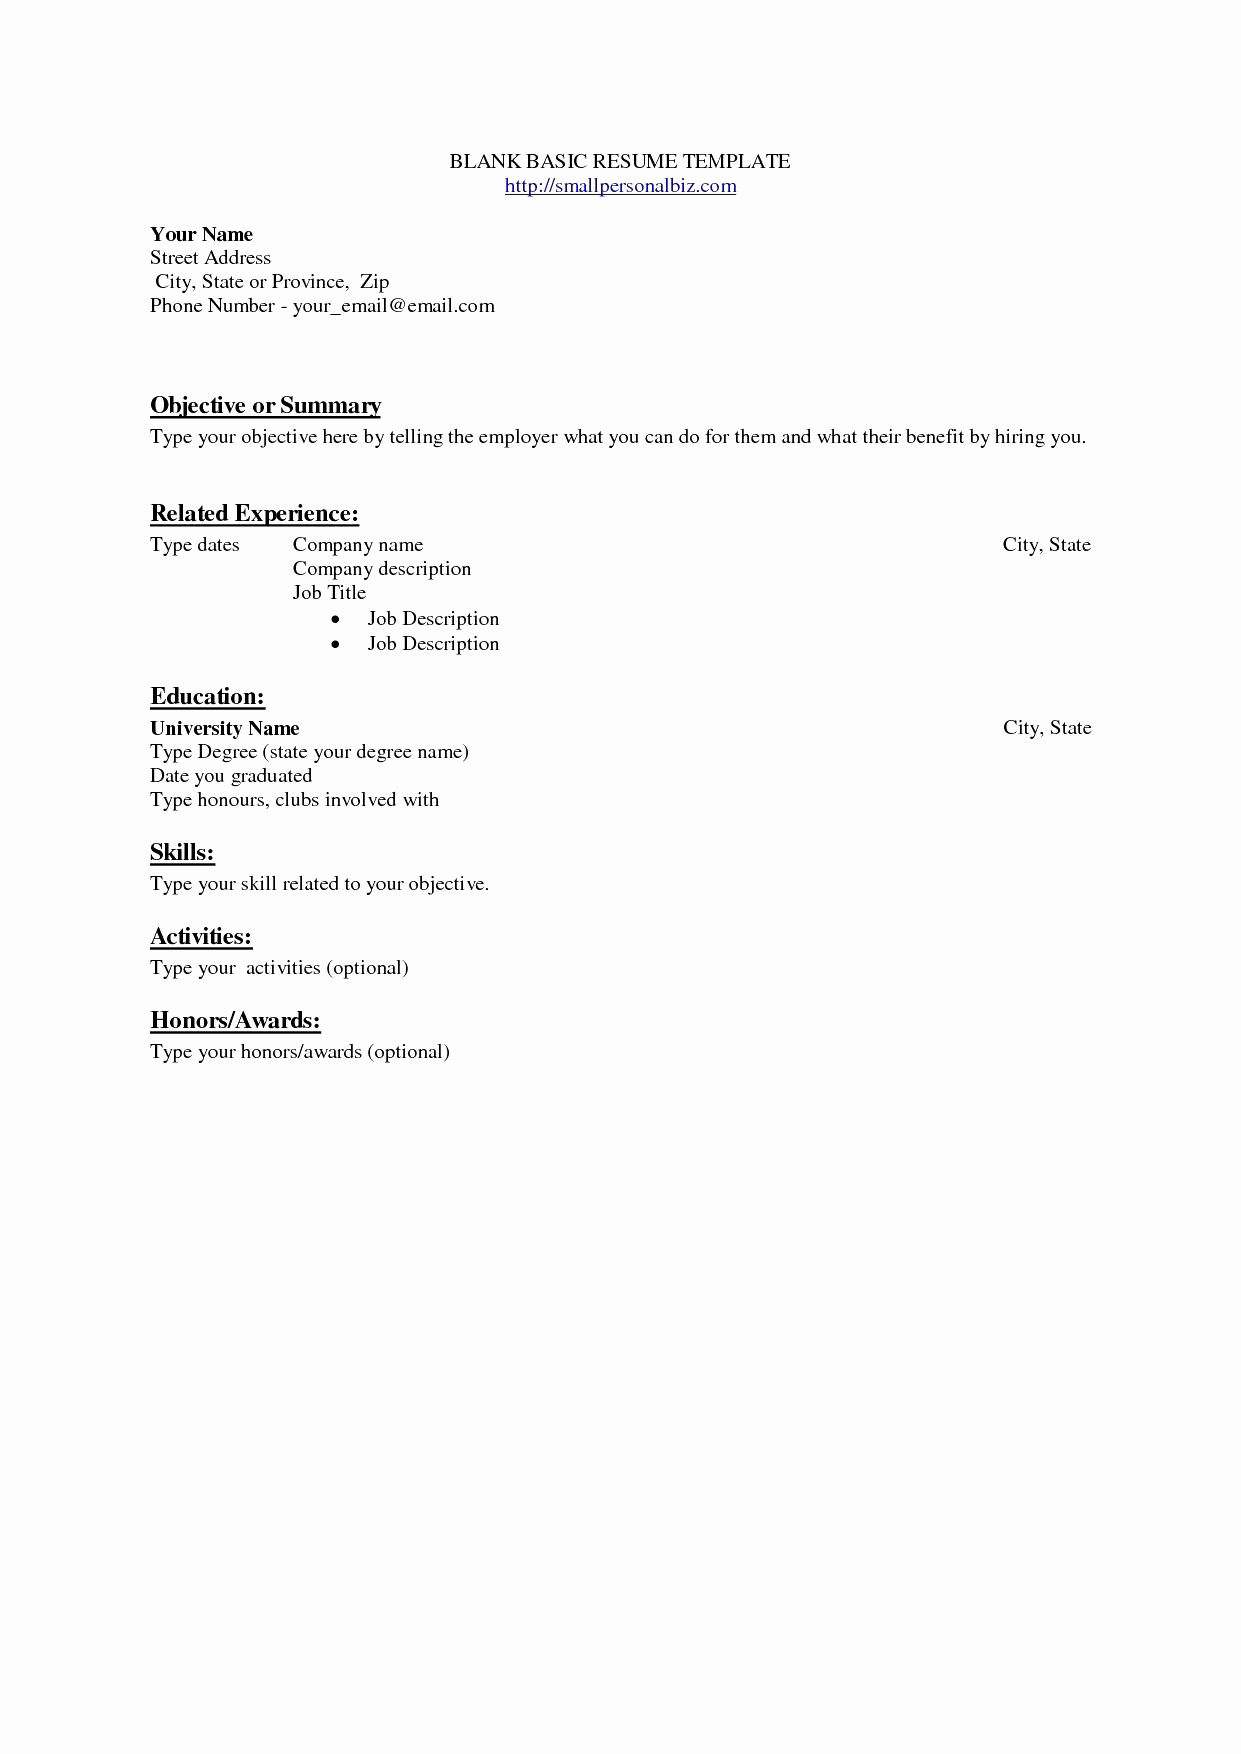 Resumes On Craigslist - Post Resume Craigslist New Reference Search Resumes Craigslist